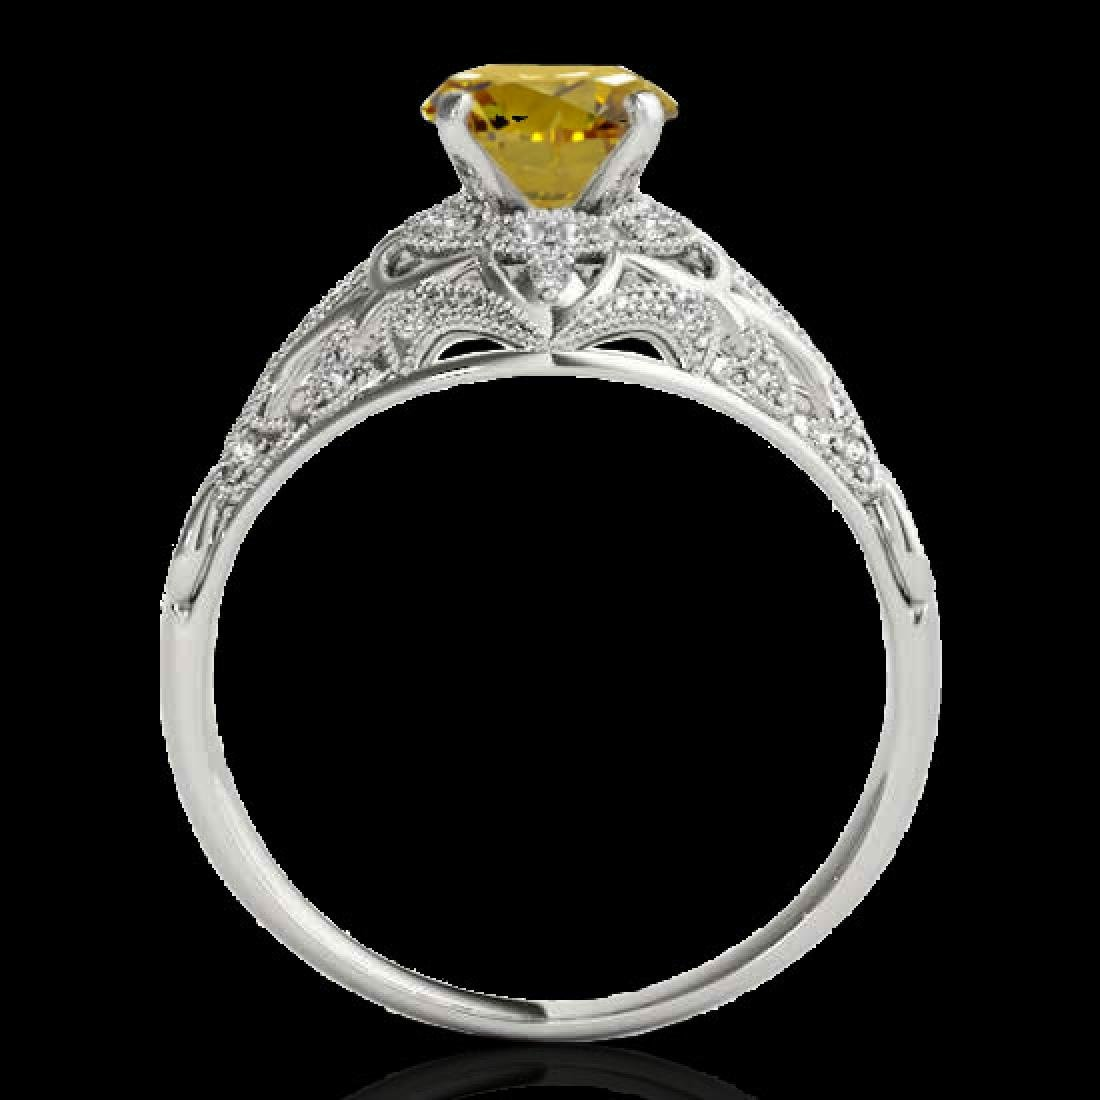 1.36 CTW Certified Si Intense Yellow Diamond Solitaire - 2